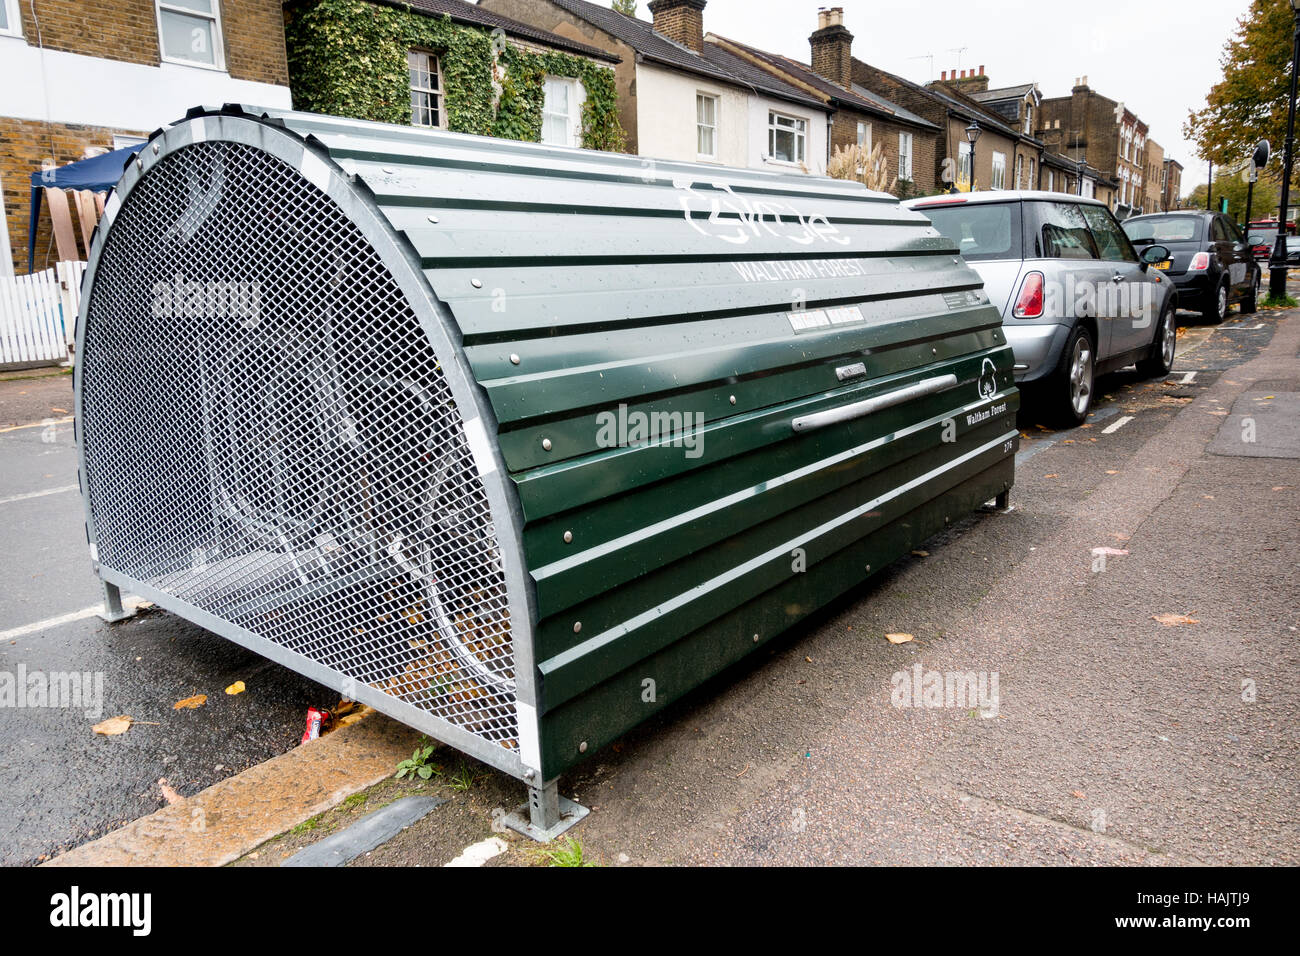 A Bike Hangar, On Street Secure Storage Rental Scheme For ...